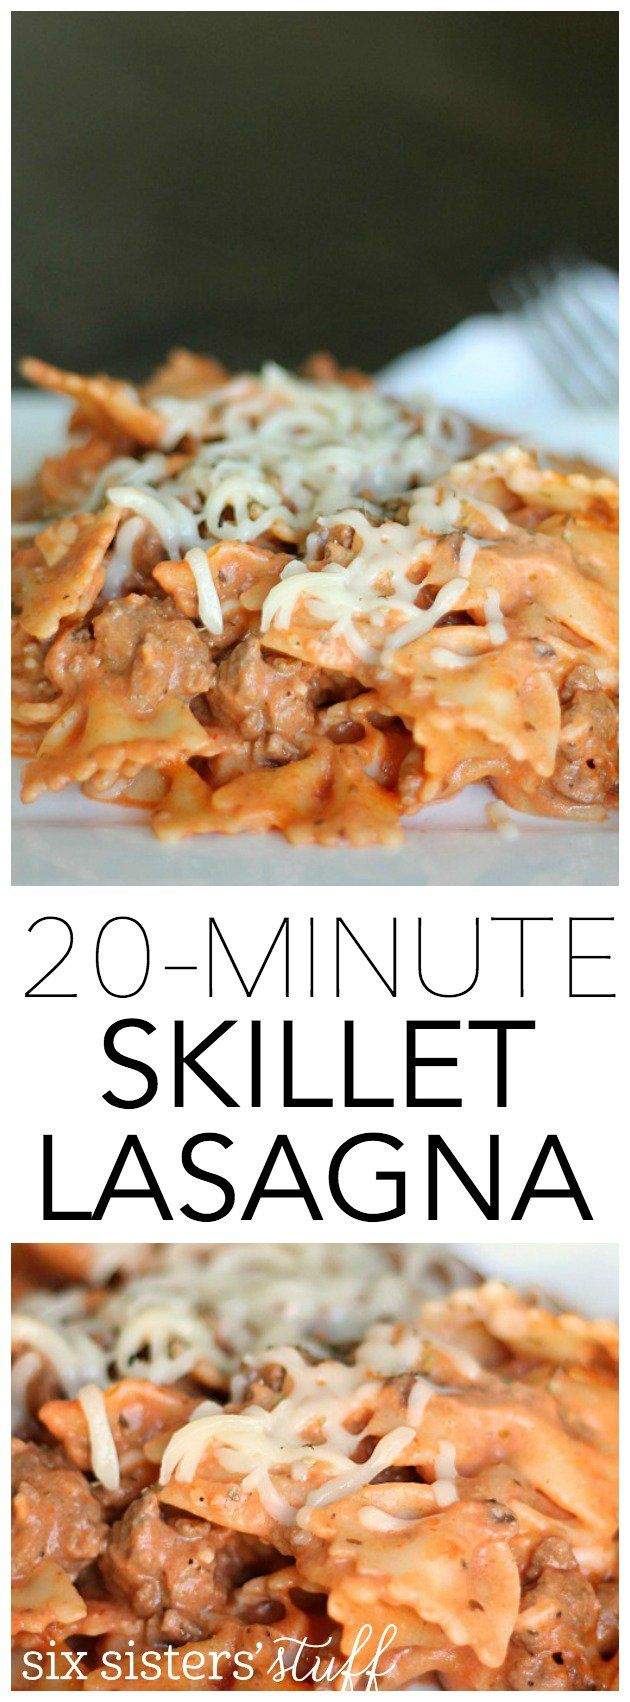 Easy Skillet Lasagna that can be made in just 20 minutes!  SixSistersStuff.com  Good. Could double so have left overs. Kids liked it.